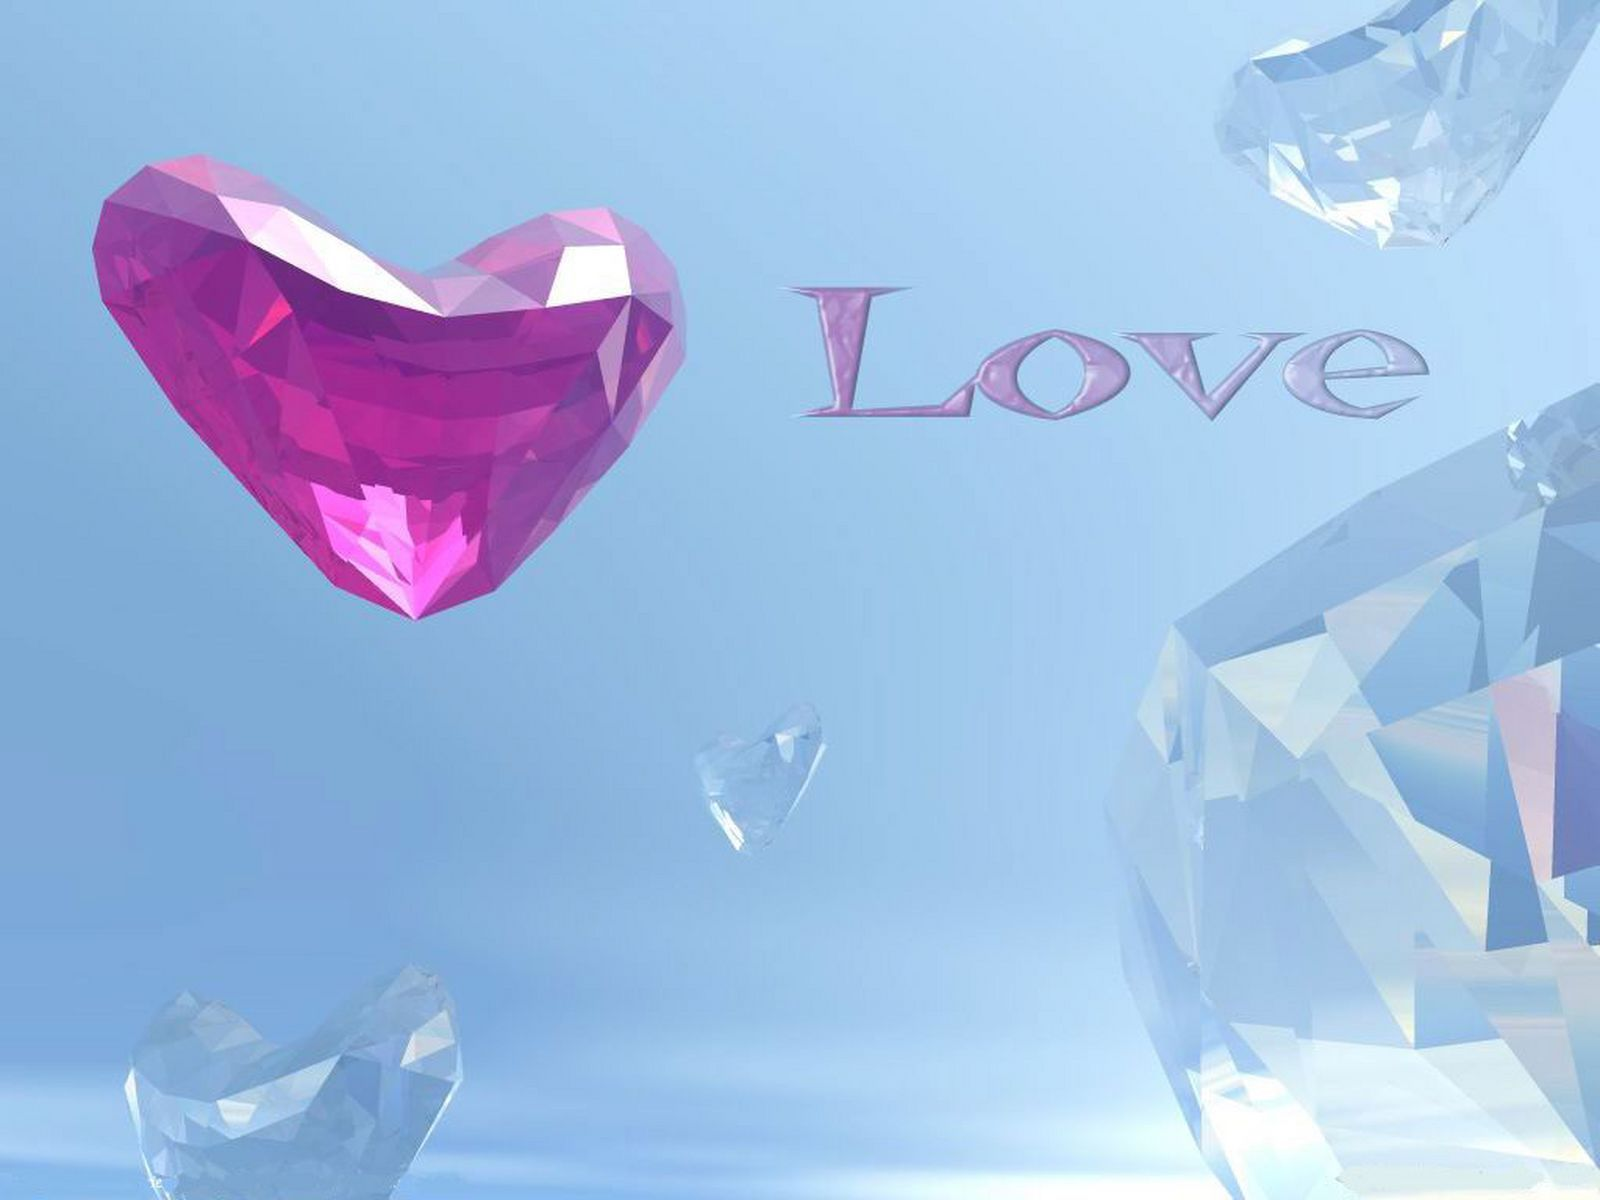 Wallpaper Gallery: Love Wallpaper - 33